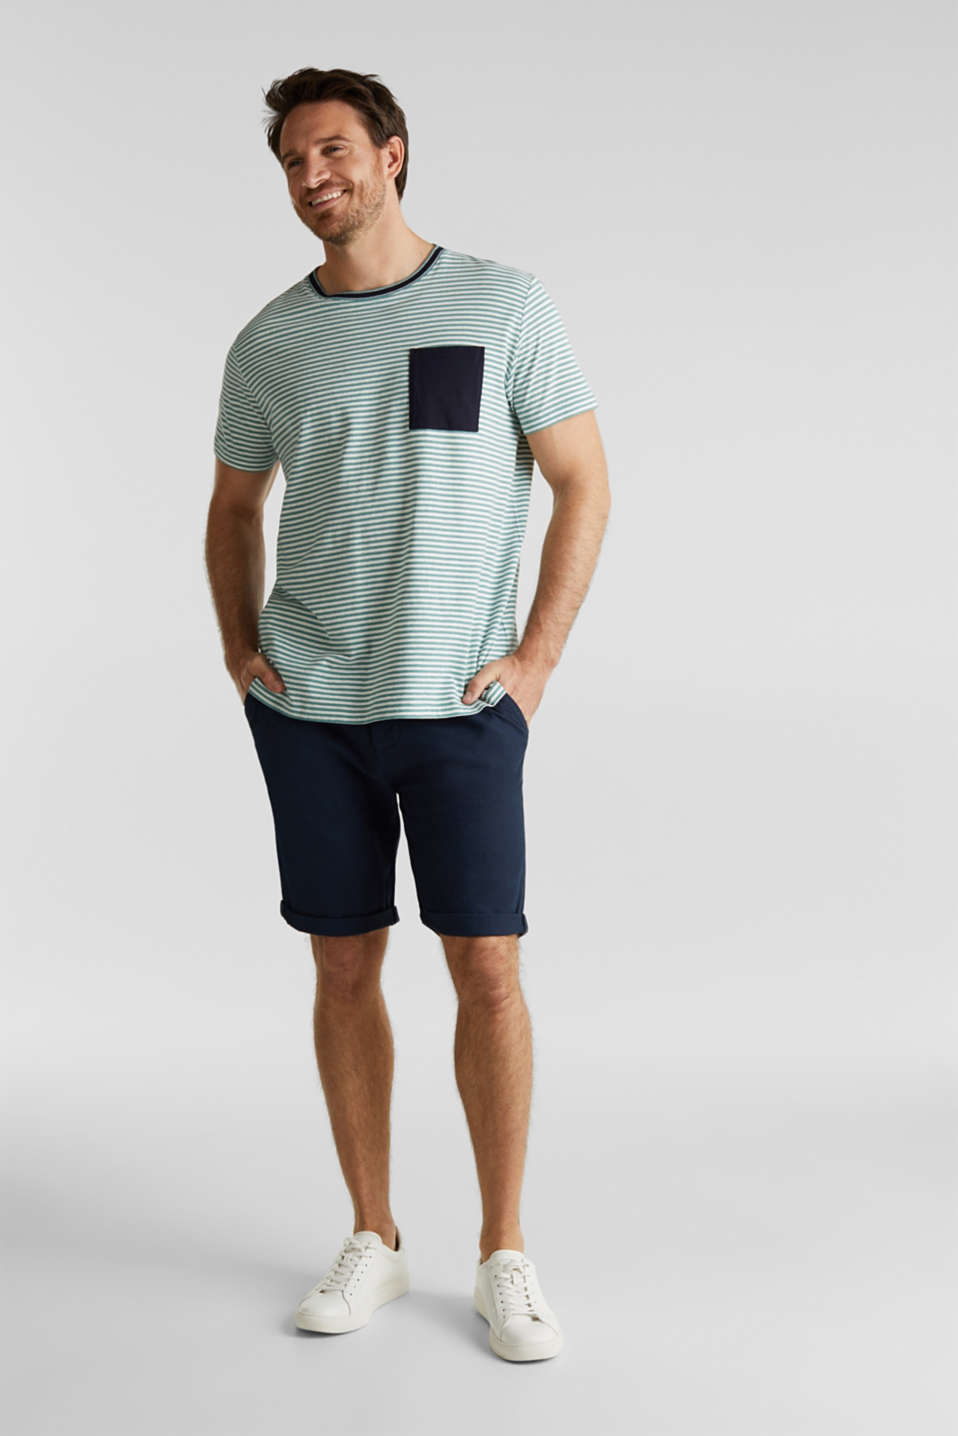 With linen: Jersey top with a pocket, TEAL GREEN 3, detail image number 2